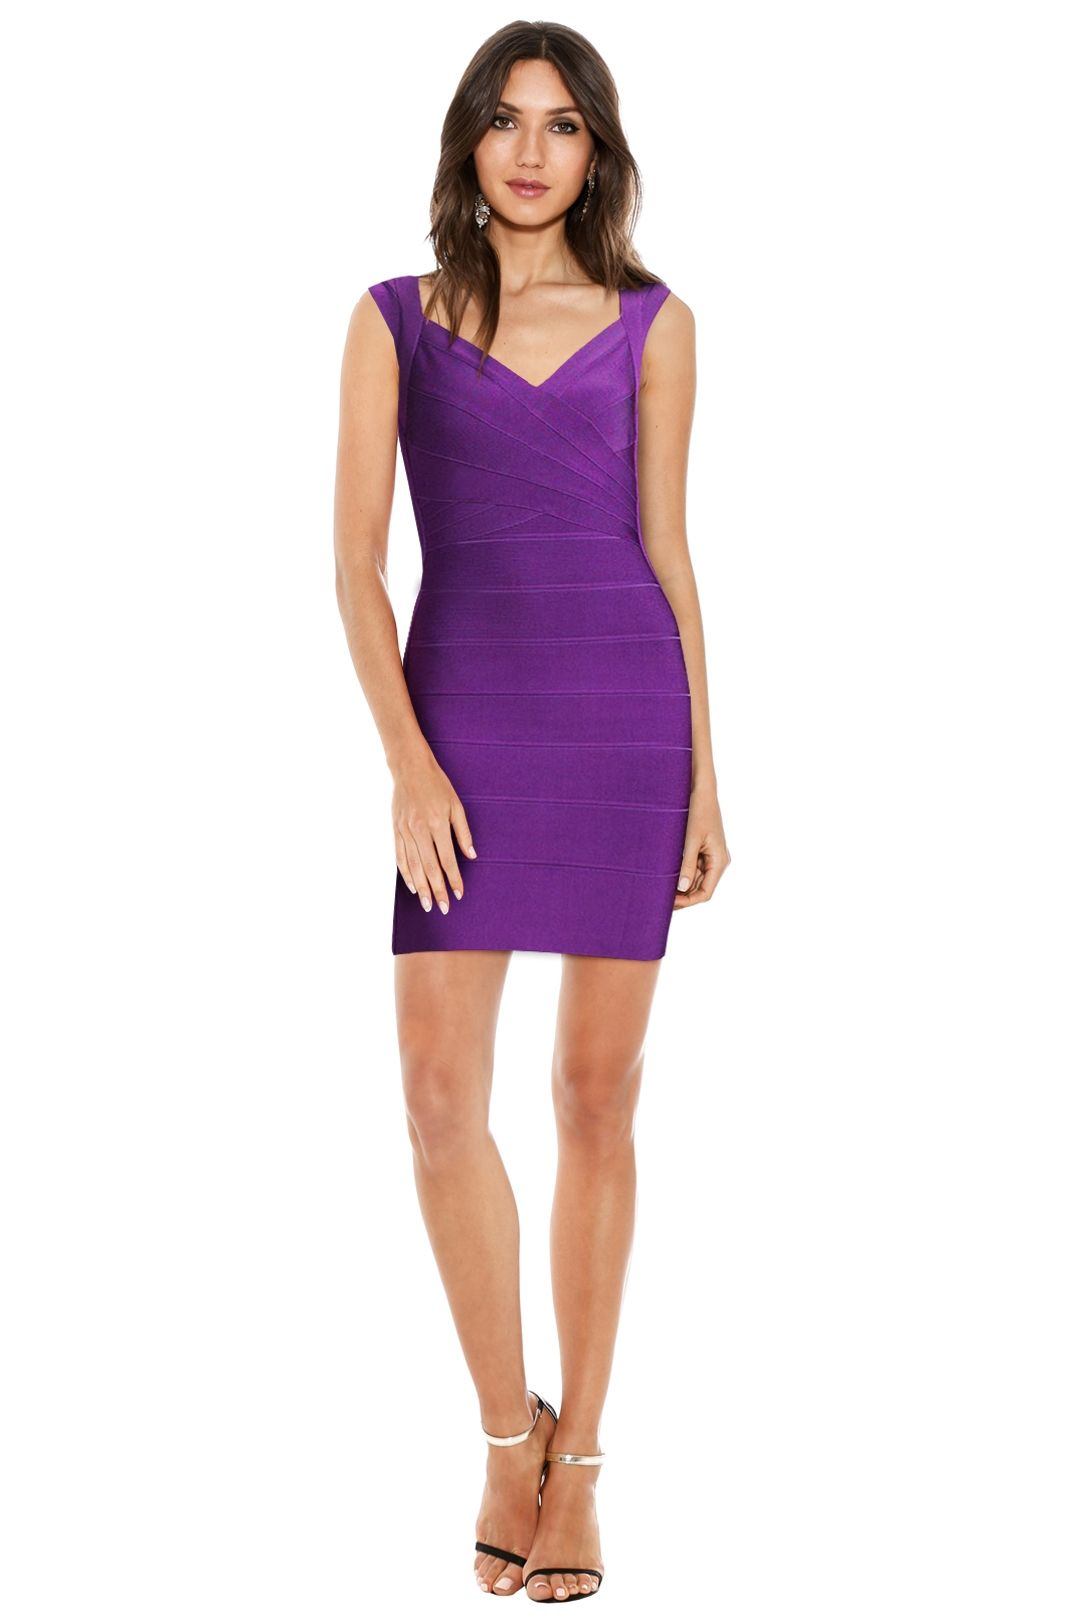 Herve Leger - Crisscross Openback Bandage Dress - Bright Violet - Front